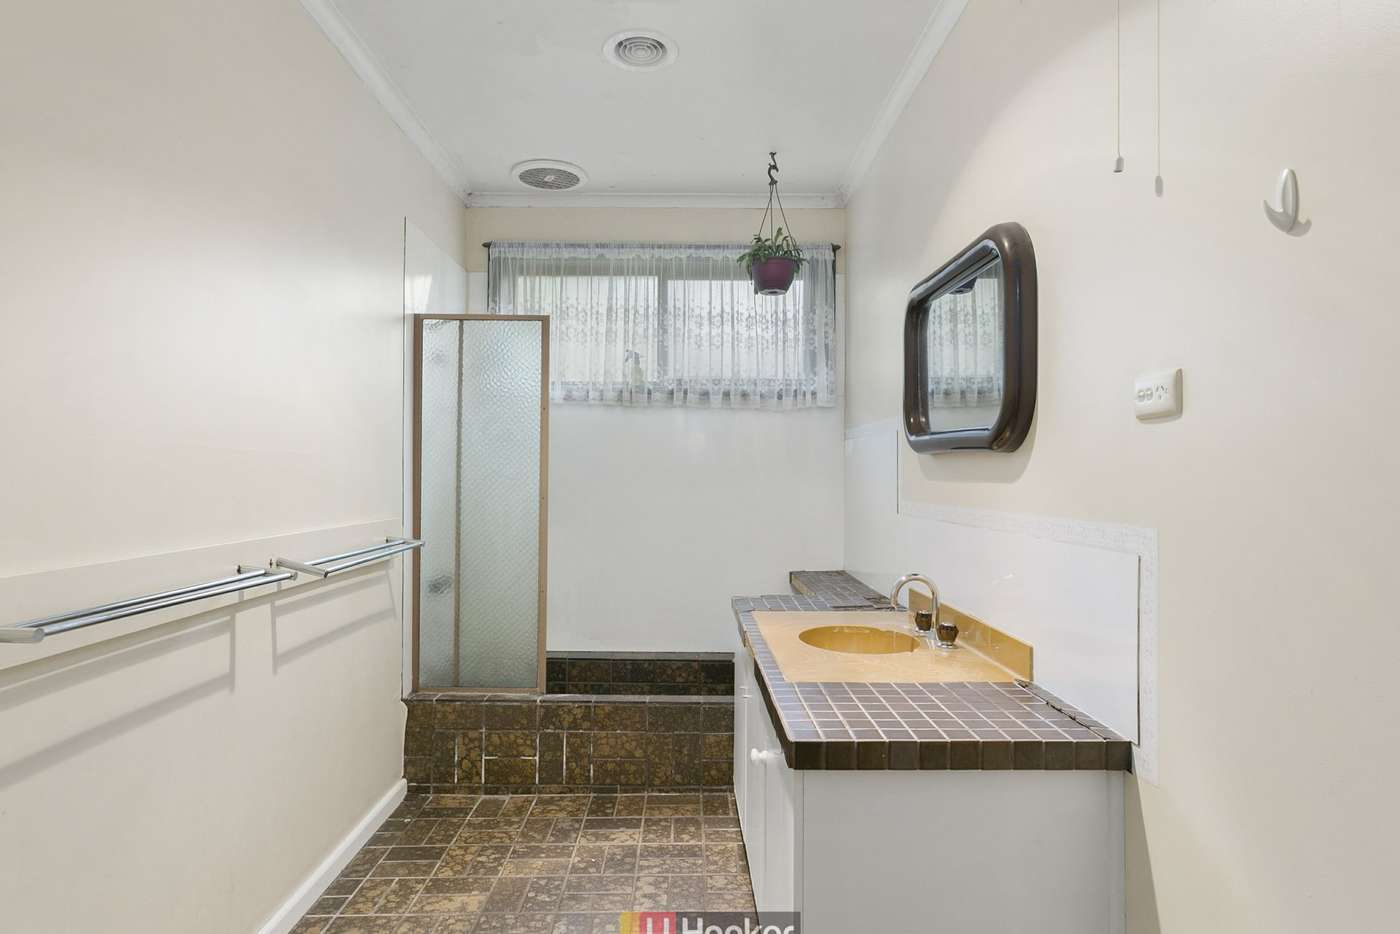 Sixth view of Homely house listing, 17 Forbes St, Colac VIC 3250